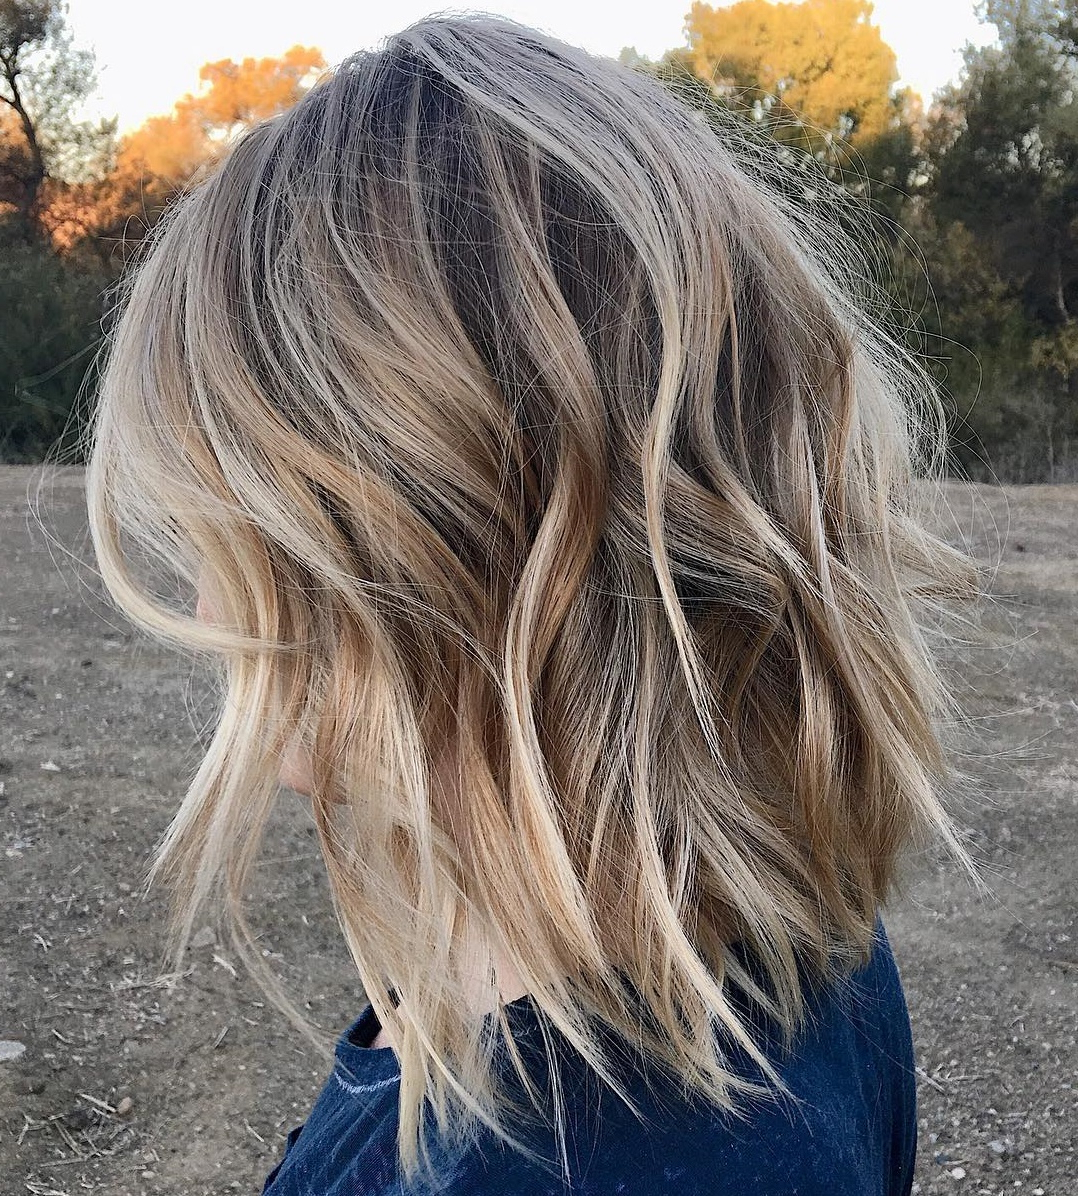 2017 Layered And Textured Bob Hairstyles With Regard To 40 Awesome Ideas For Layered Bob Hairstyles You Can't Miss (View 2 of 20)